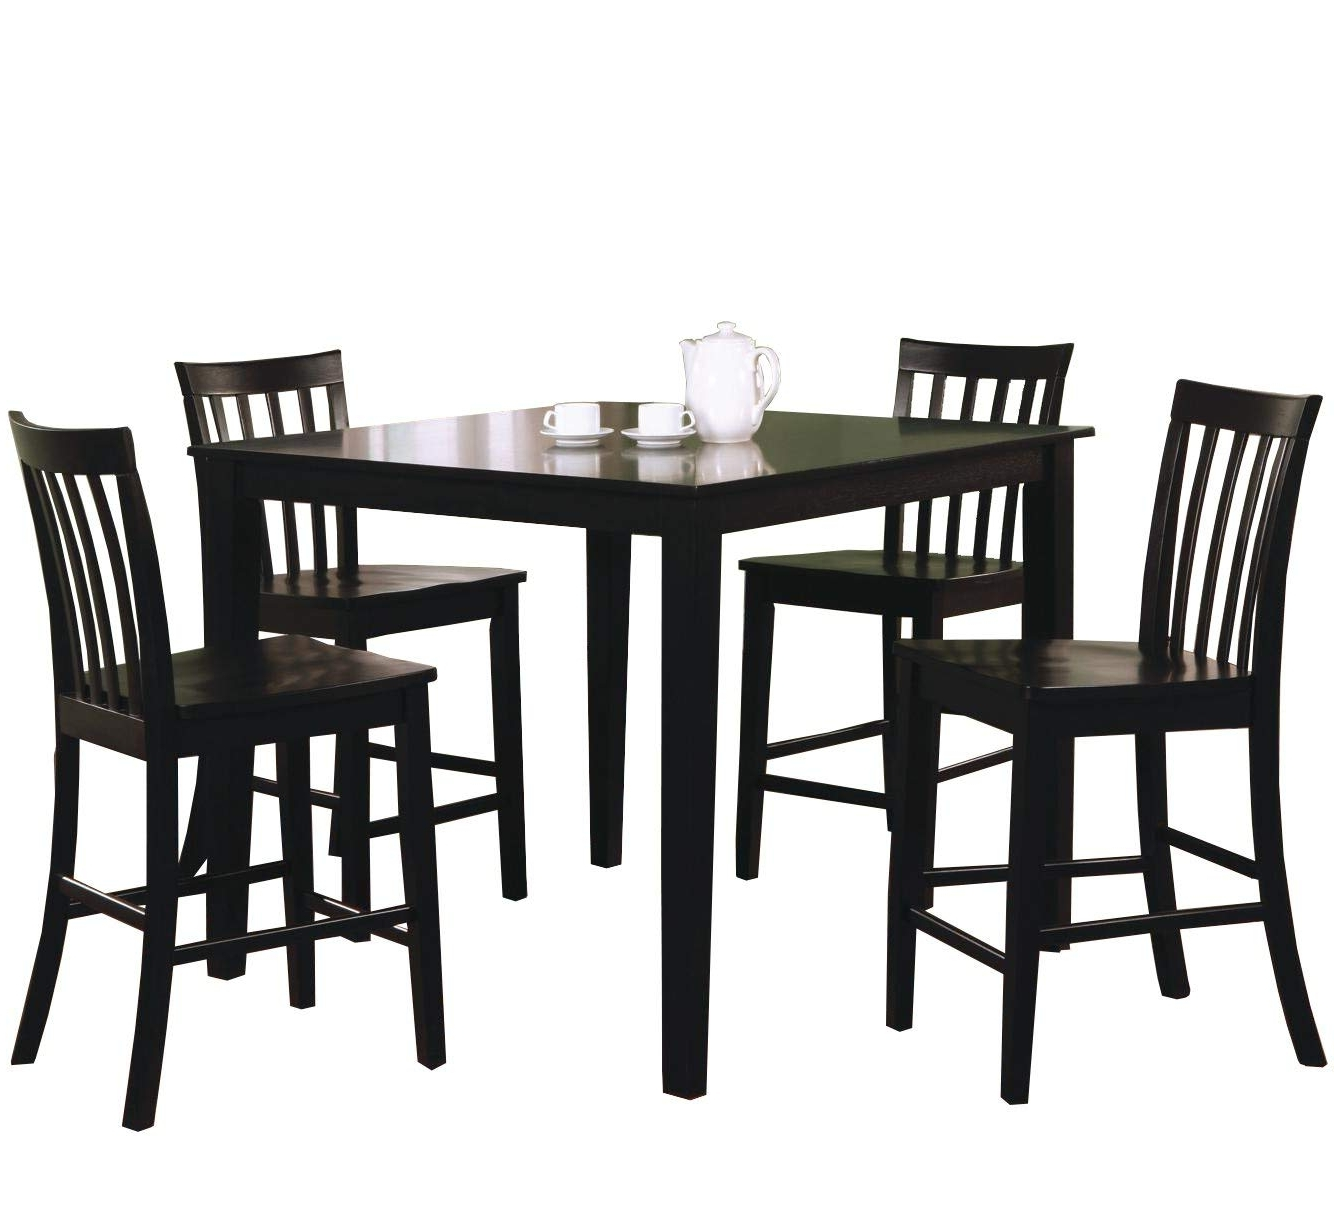 2018 Market 5 Piece Counter Sets Intended For Amazon – Coaster 5 Piece Dining Set With 4 Barstools, Black (Gallery 25 of 25)